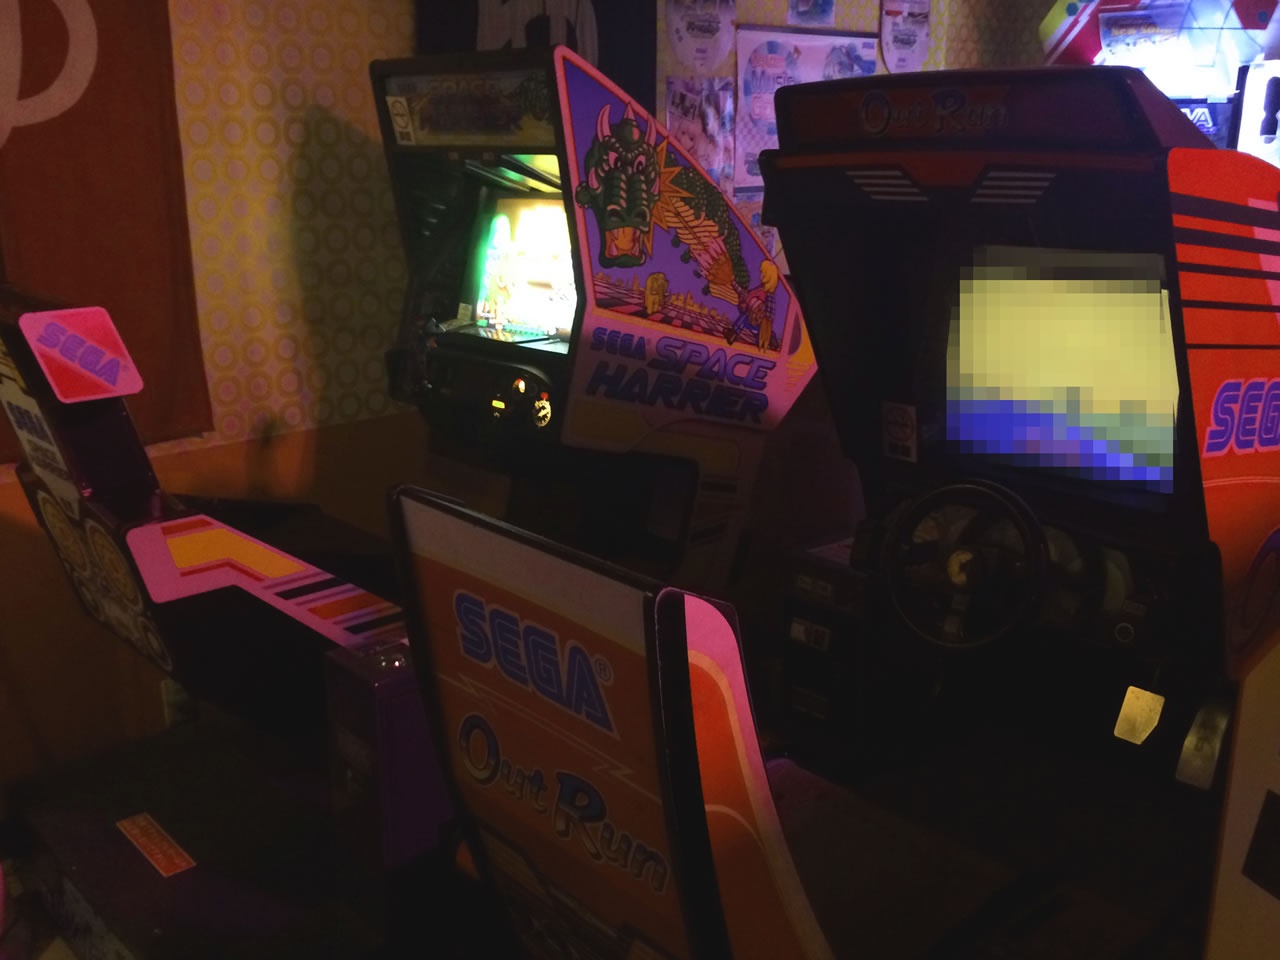 arcade-game-centers-are-becoming-museum-sp-001-004